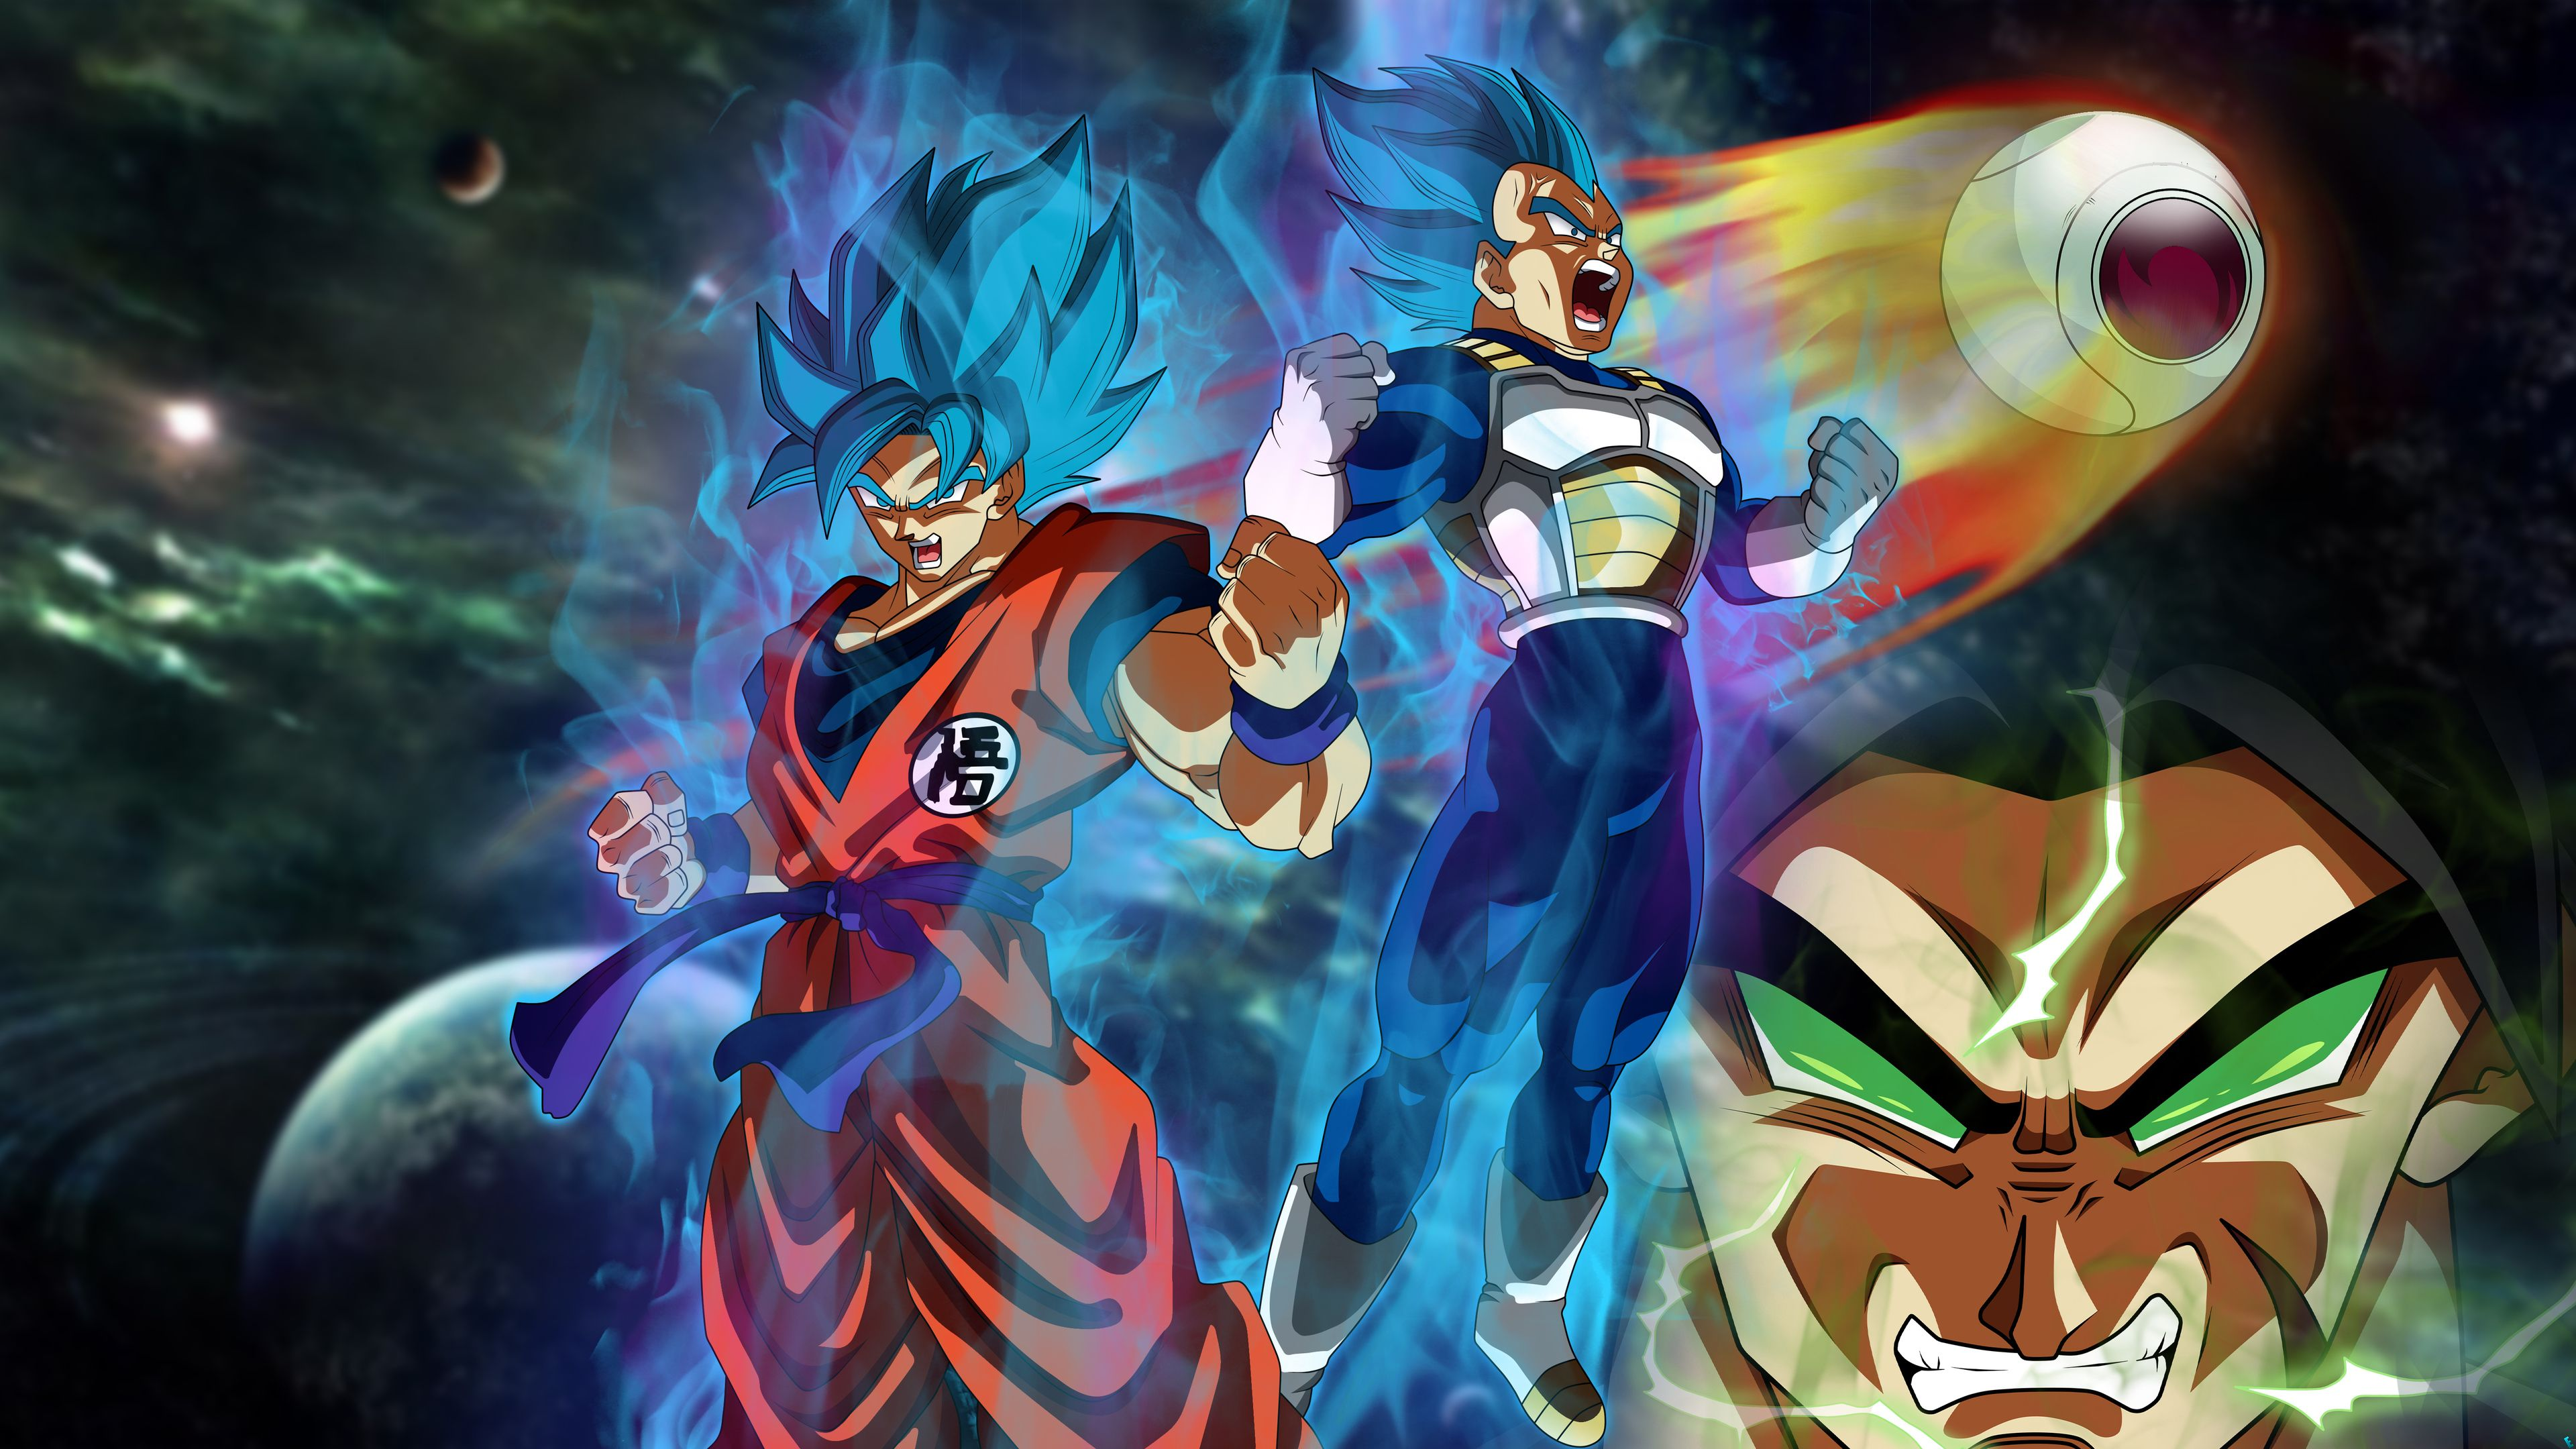 Dragon Ball Super Chapter 58 Release Date Predictions Goku And Vegeta Team Up To Figh In 2020 Dragon Ball Super Wallpapers Dragon Ball Wallpaper Iphone Goku Wallpaper